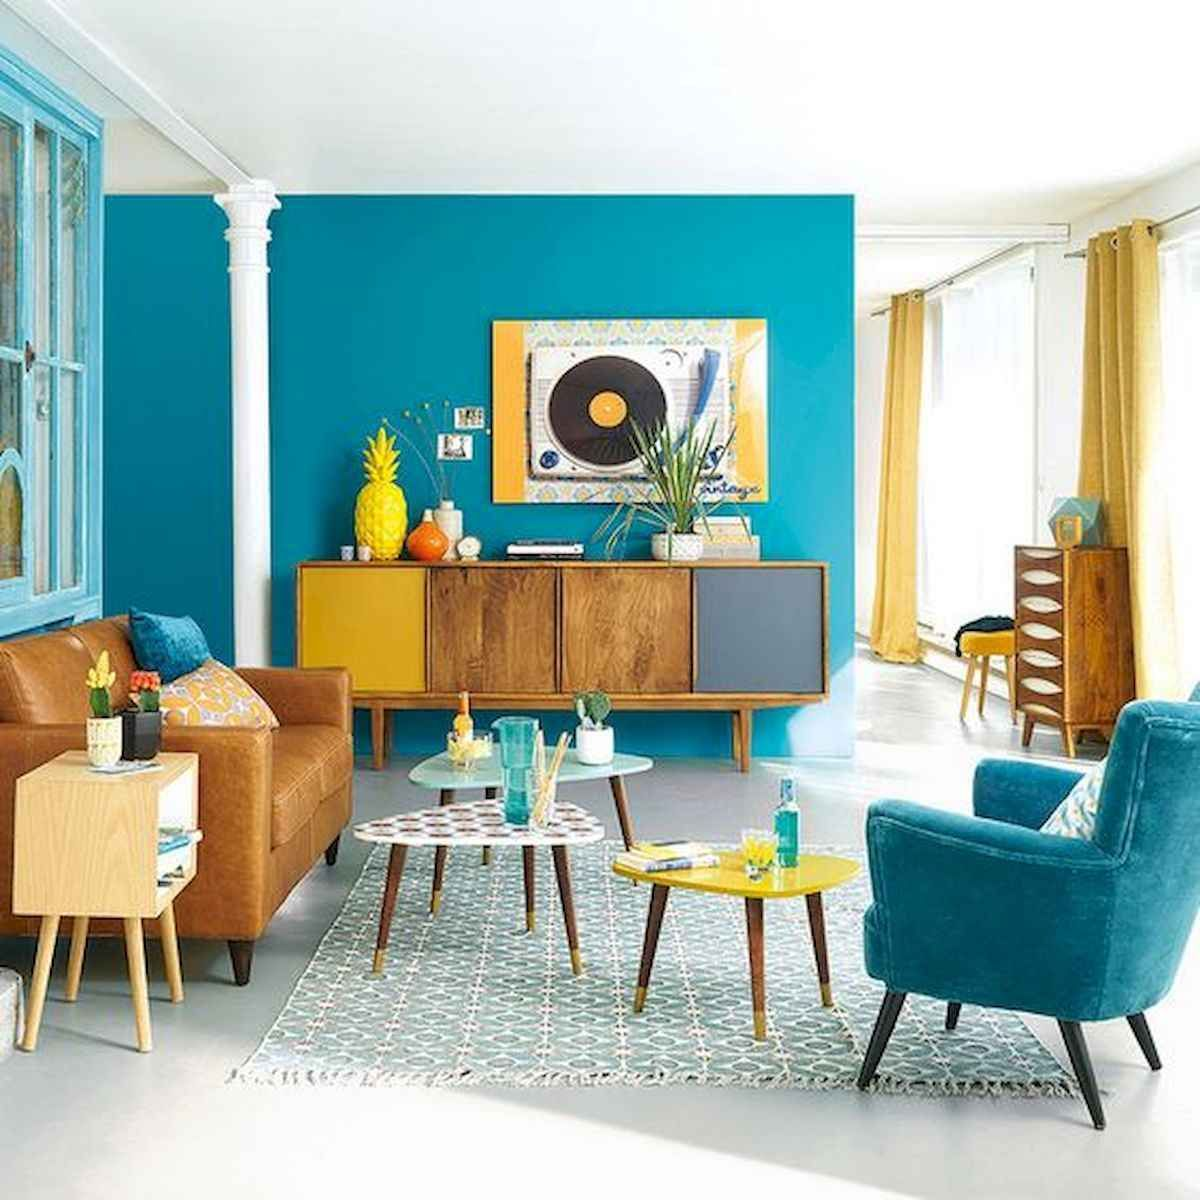 80 Excellent Vintage Living Room Decor Ideas And Remodel 65 Retro Living Rooms Vintage Living Room Decor Colourful Living Room Decor